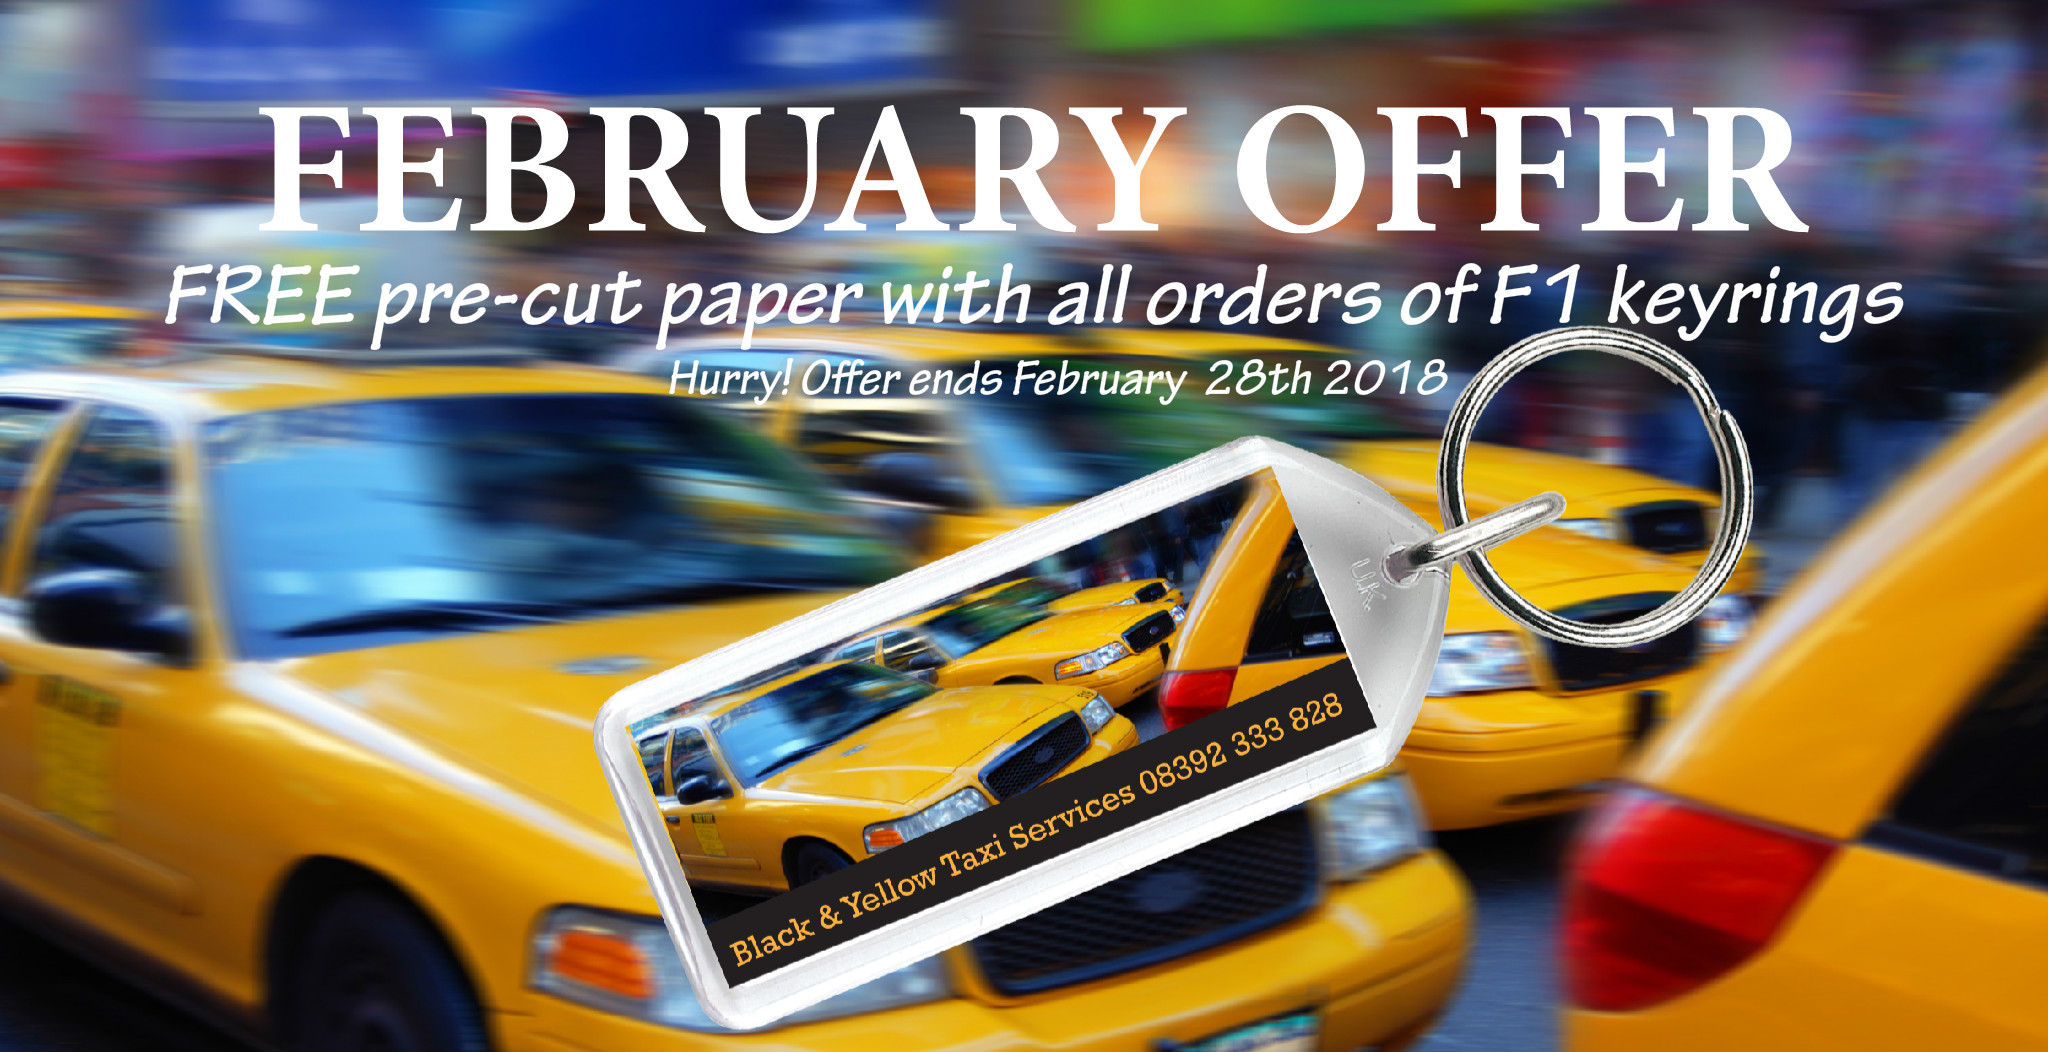 February Offer! Free precut paper when you order F1 keyrings